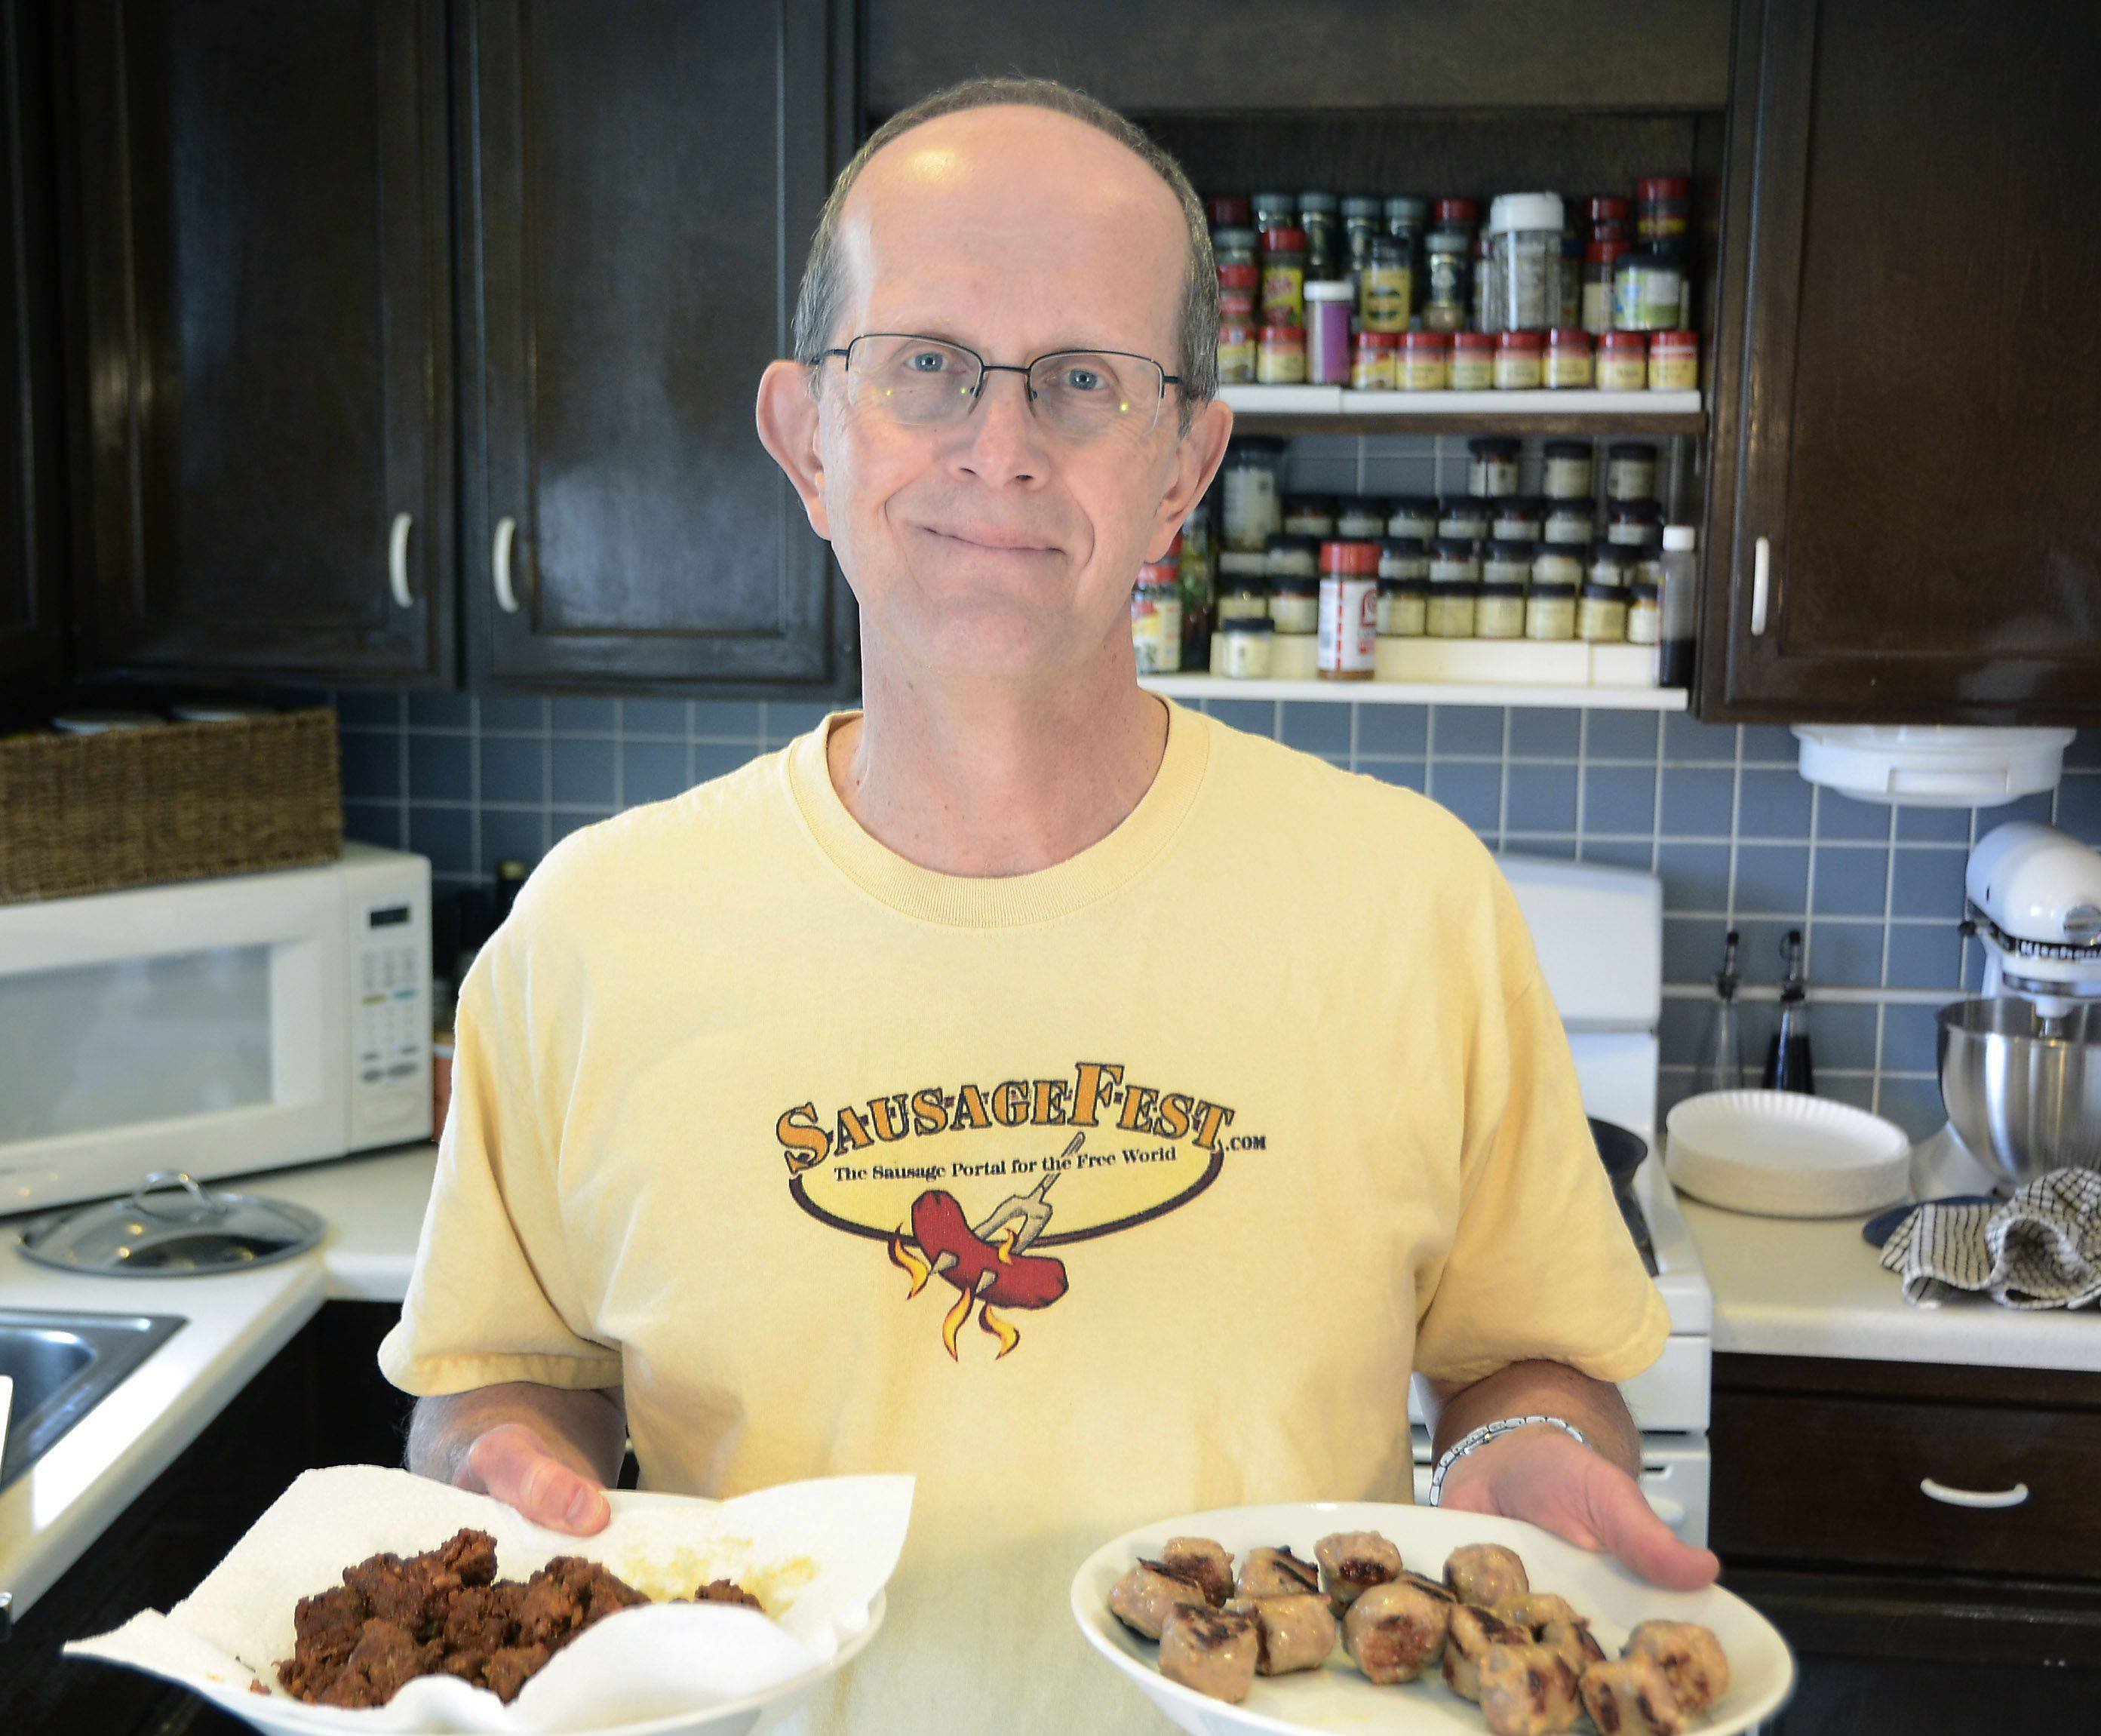 Palatine dad shares his sausage fascination